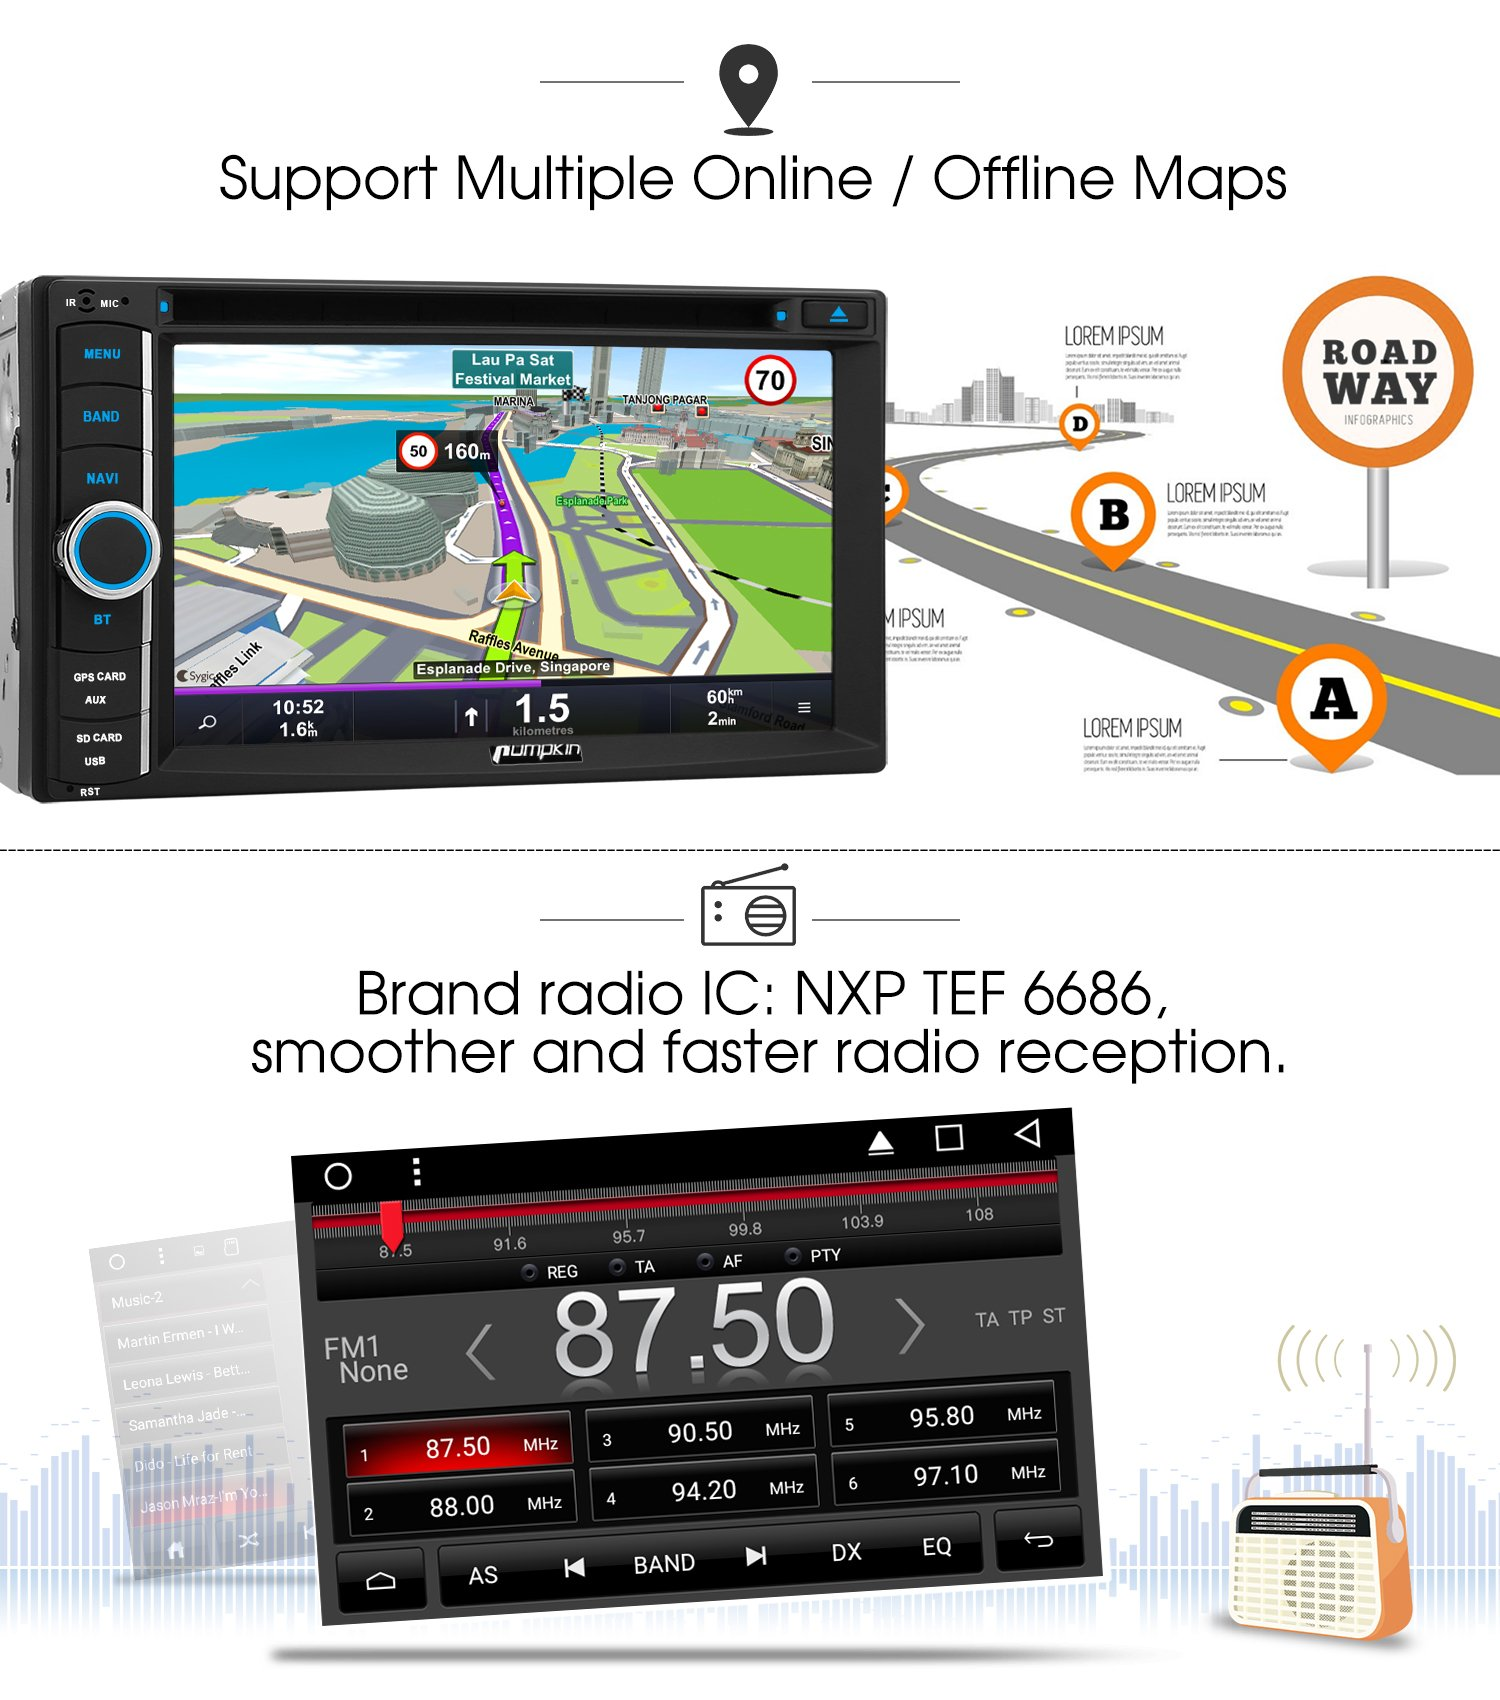 Android 7.1 Head Unit Double Din, Octa Core 32GB+ 2GB Car Stereo DVD CD Player with Navigation, Support Android Auto, Bluetooth, WIFI, MirrorLink, Backup Camera, AUX, Dash Cam, 6.2 Inch Touch Screen by PUMPKIN (Image #3)